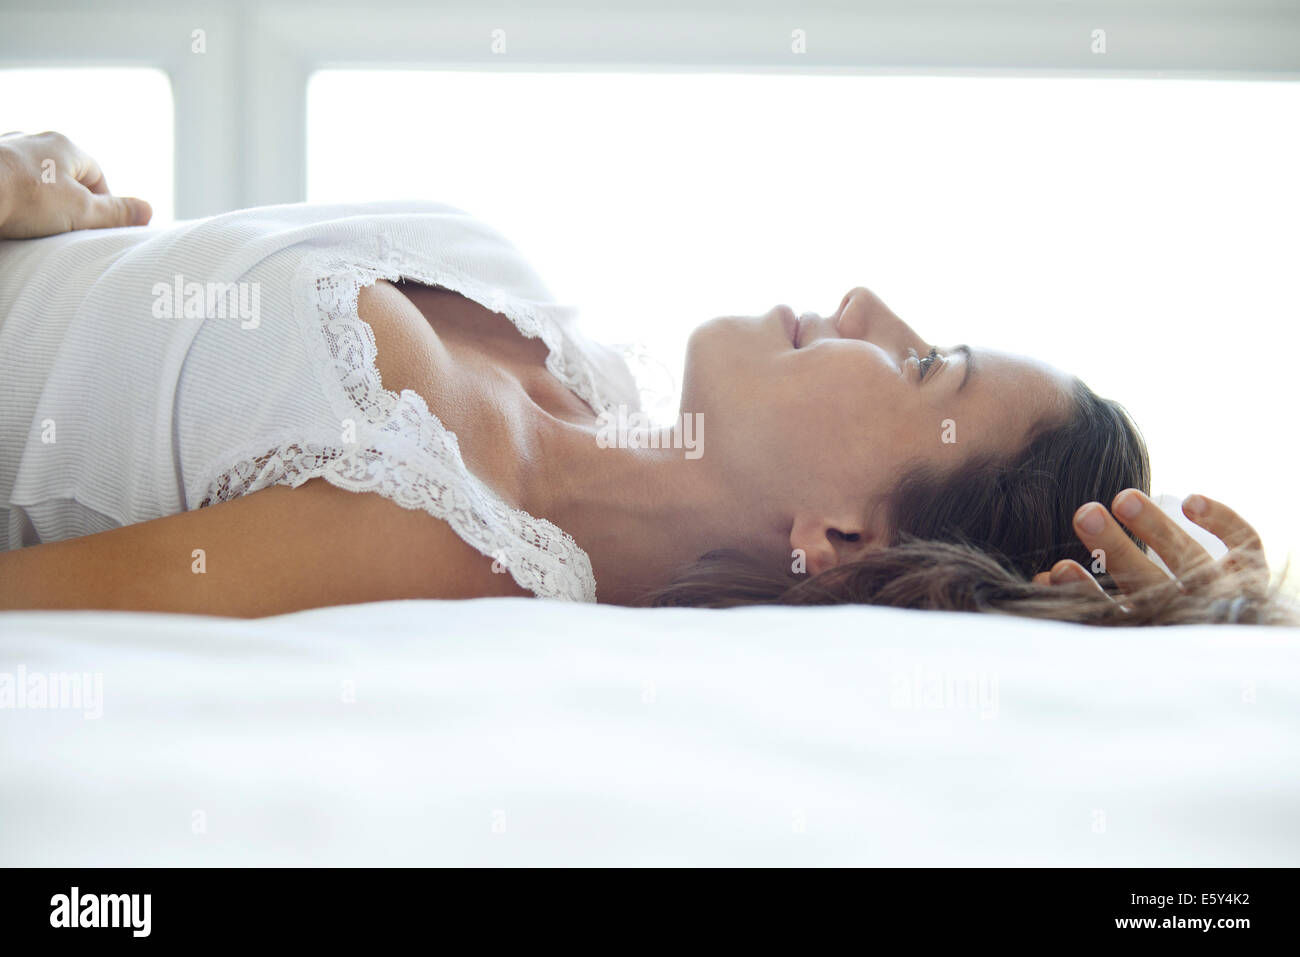 Woman lying on bed, looking up and smiling dreamily - Stock Image